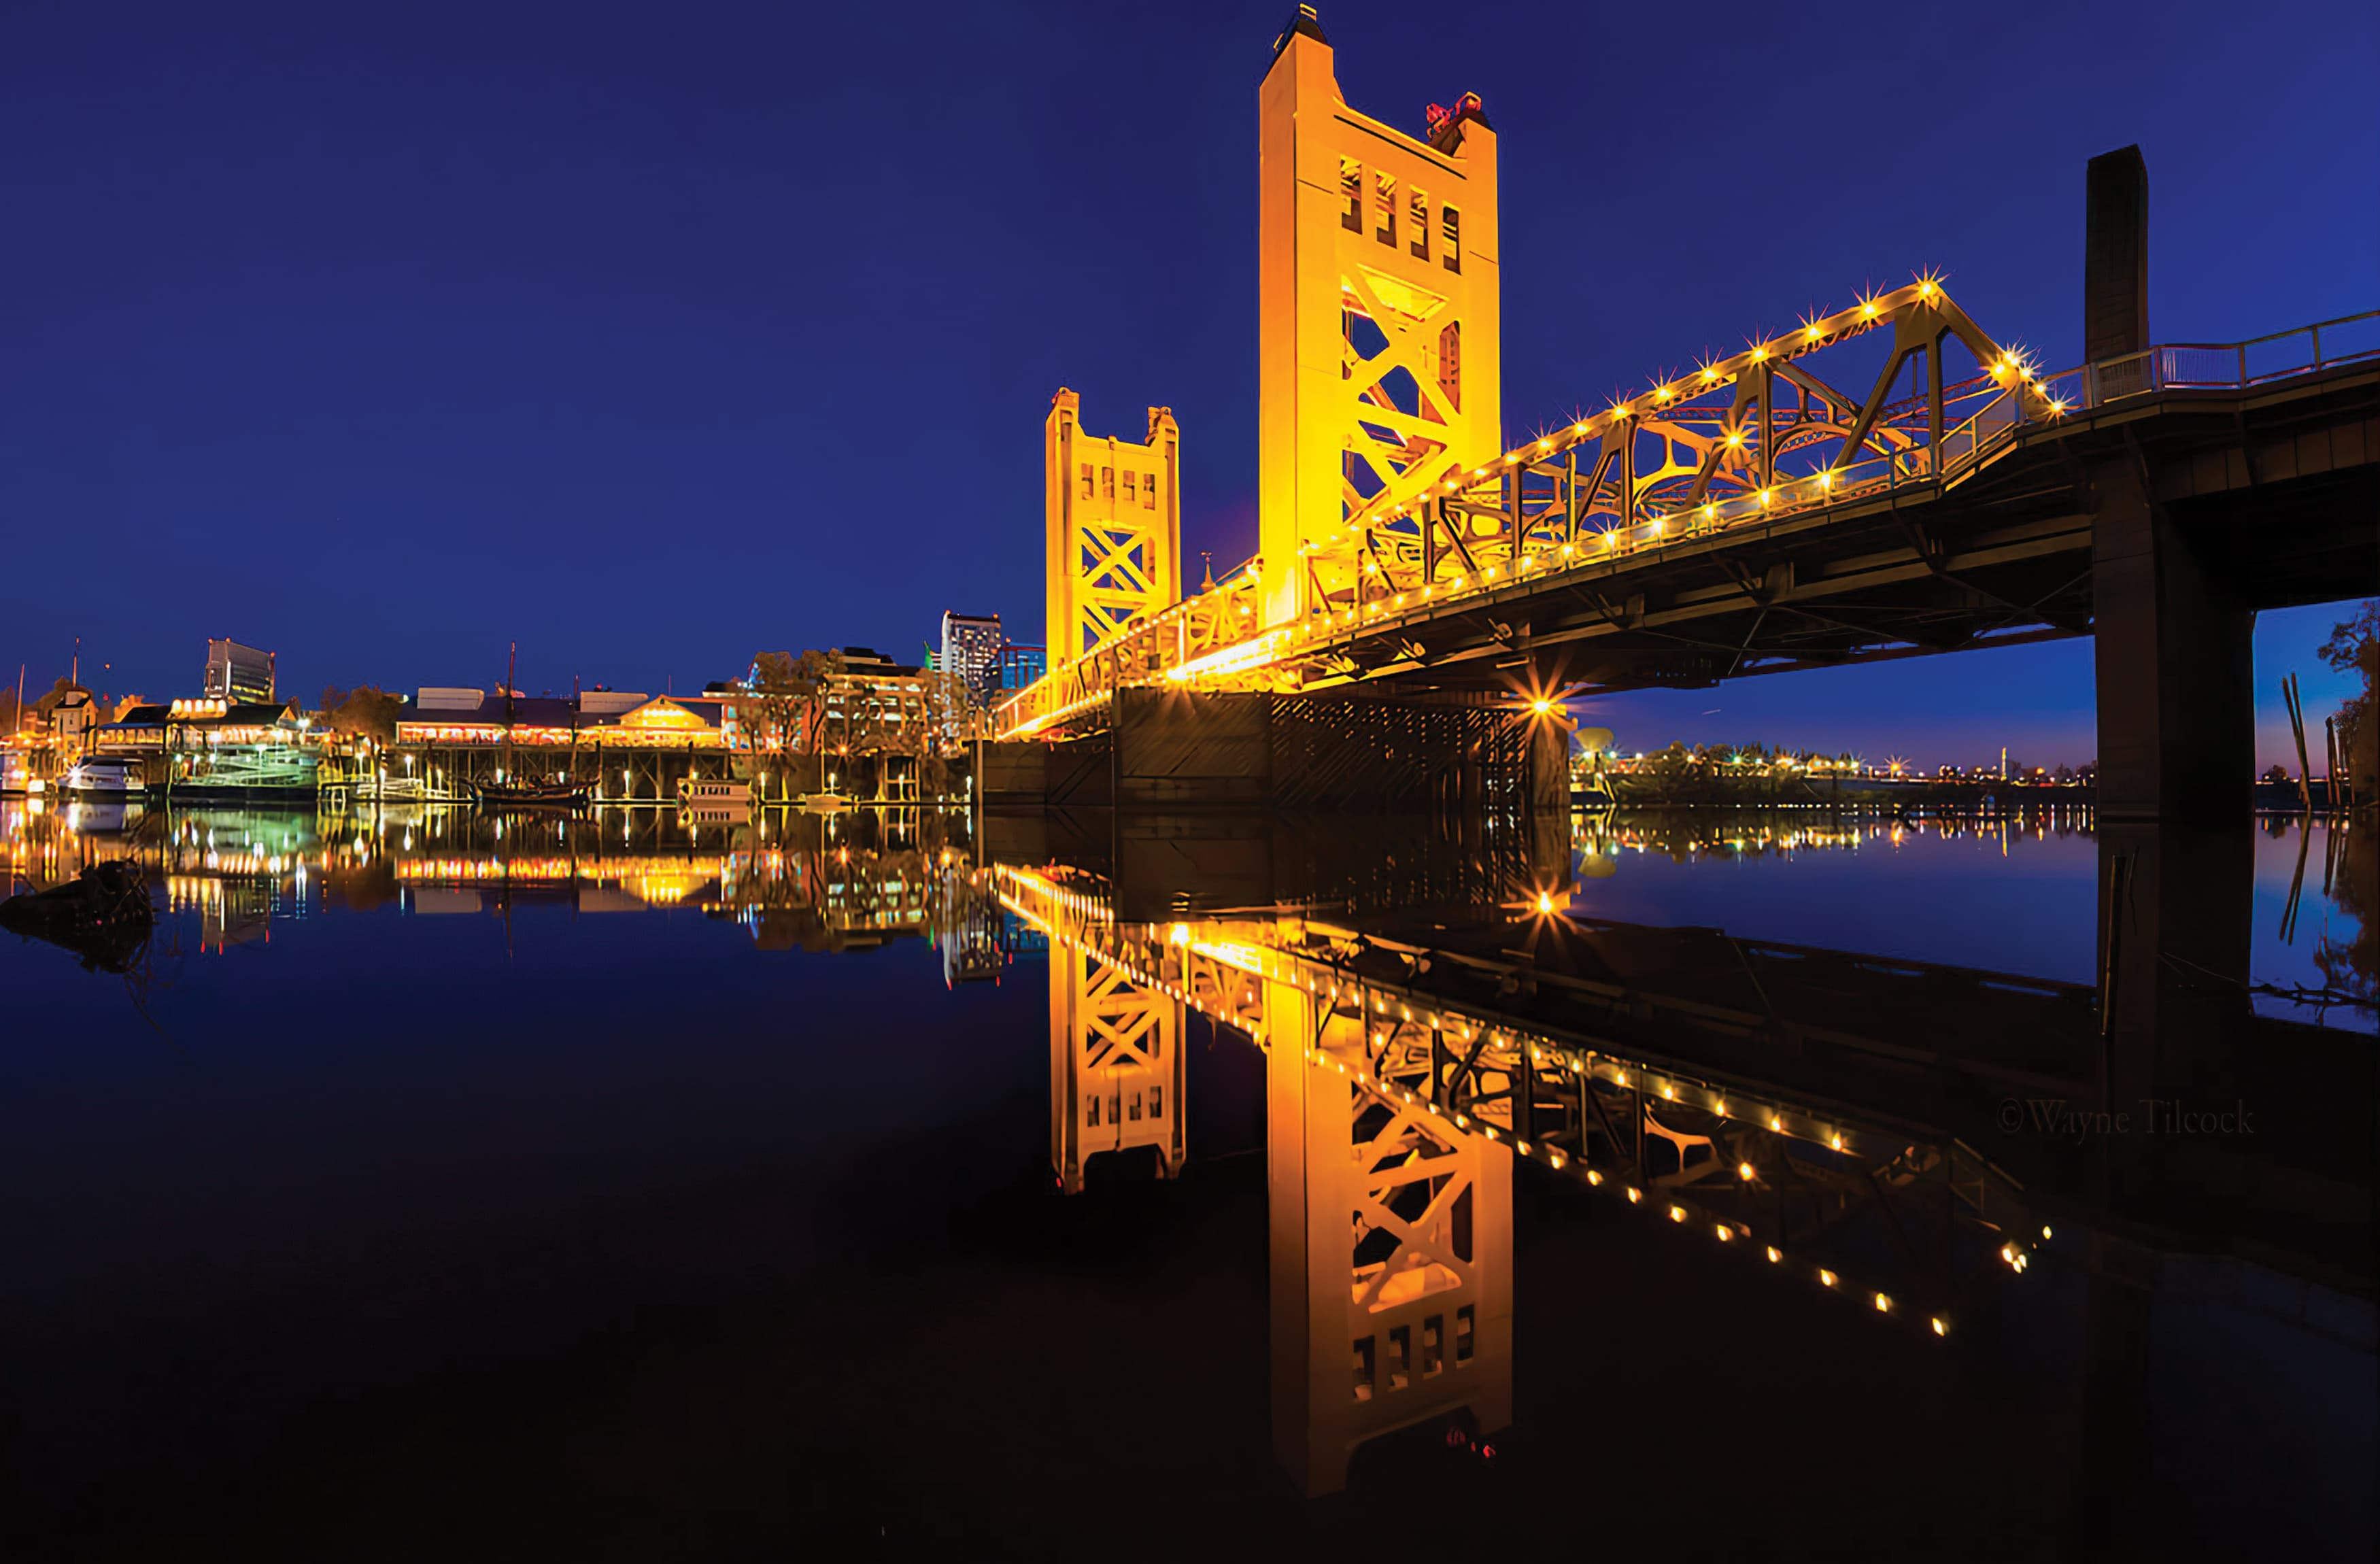 An photograph of the Sacramento Waterfront area at night.